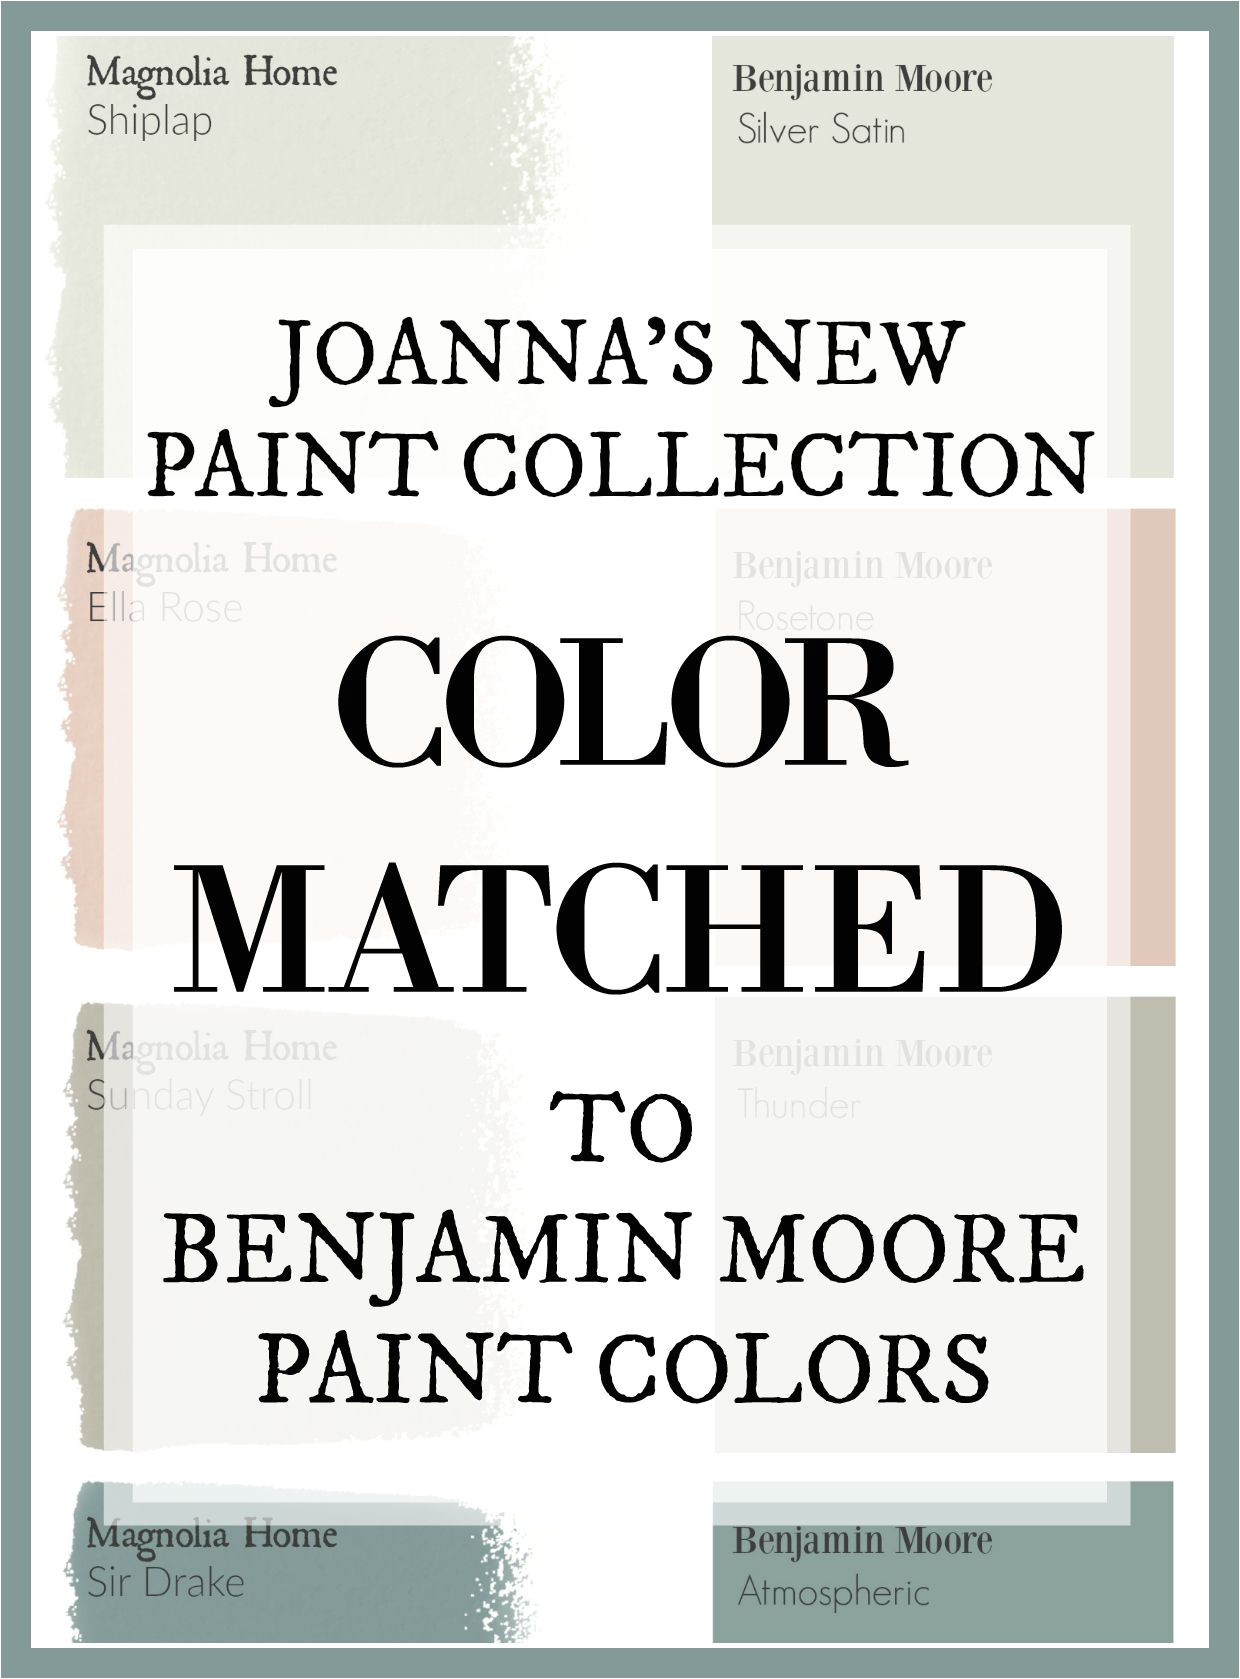 fixer upper s joanna gaines has a new paint line and this site has color matched